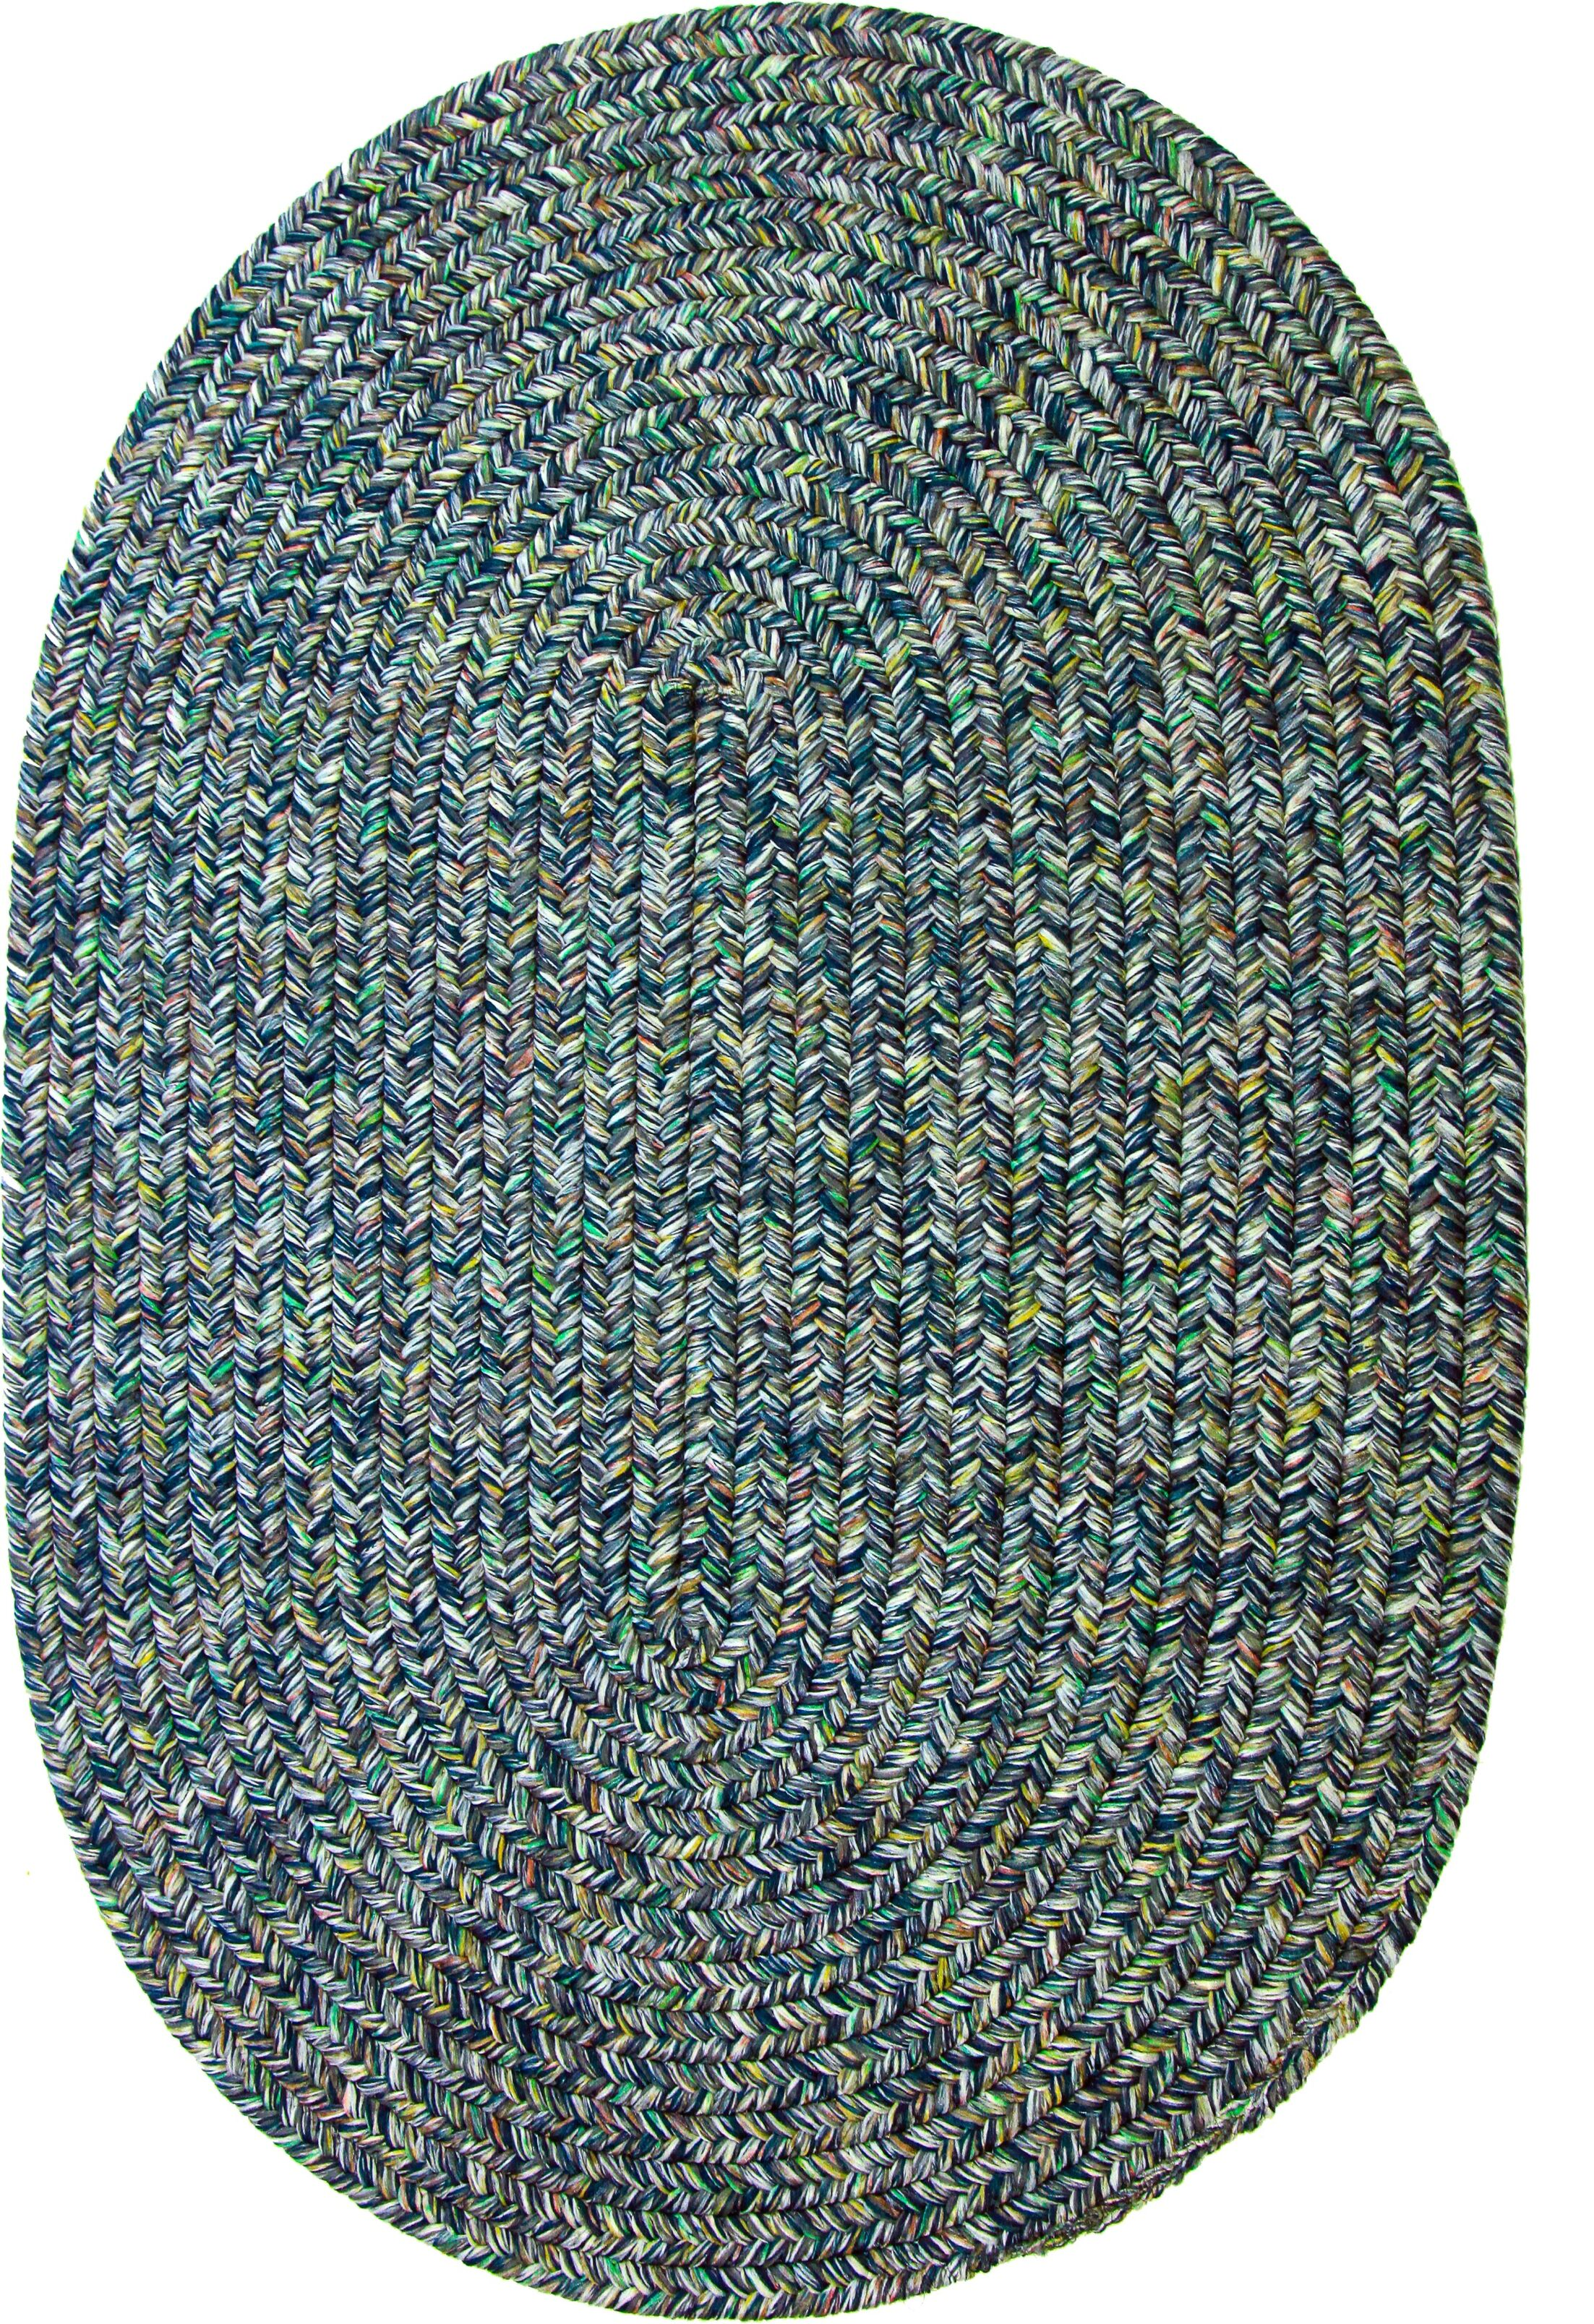 Rayadurg Denim Blue Indoor/Outdoor Area Rug Rug Size: Round 8'